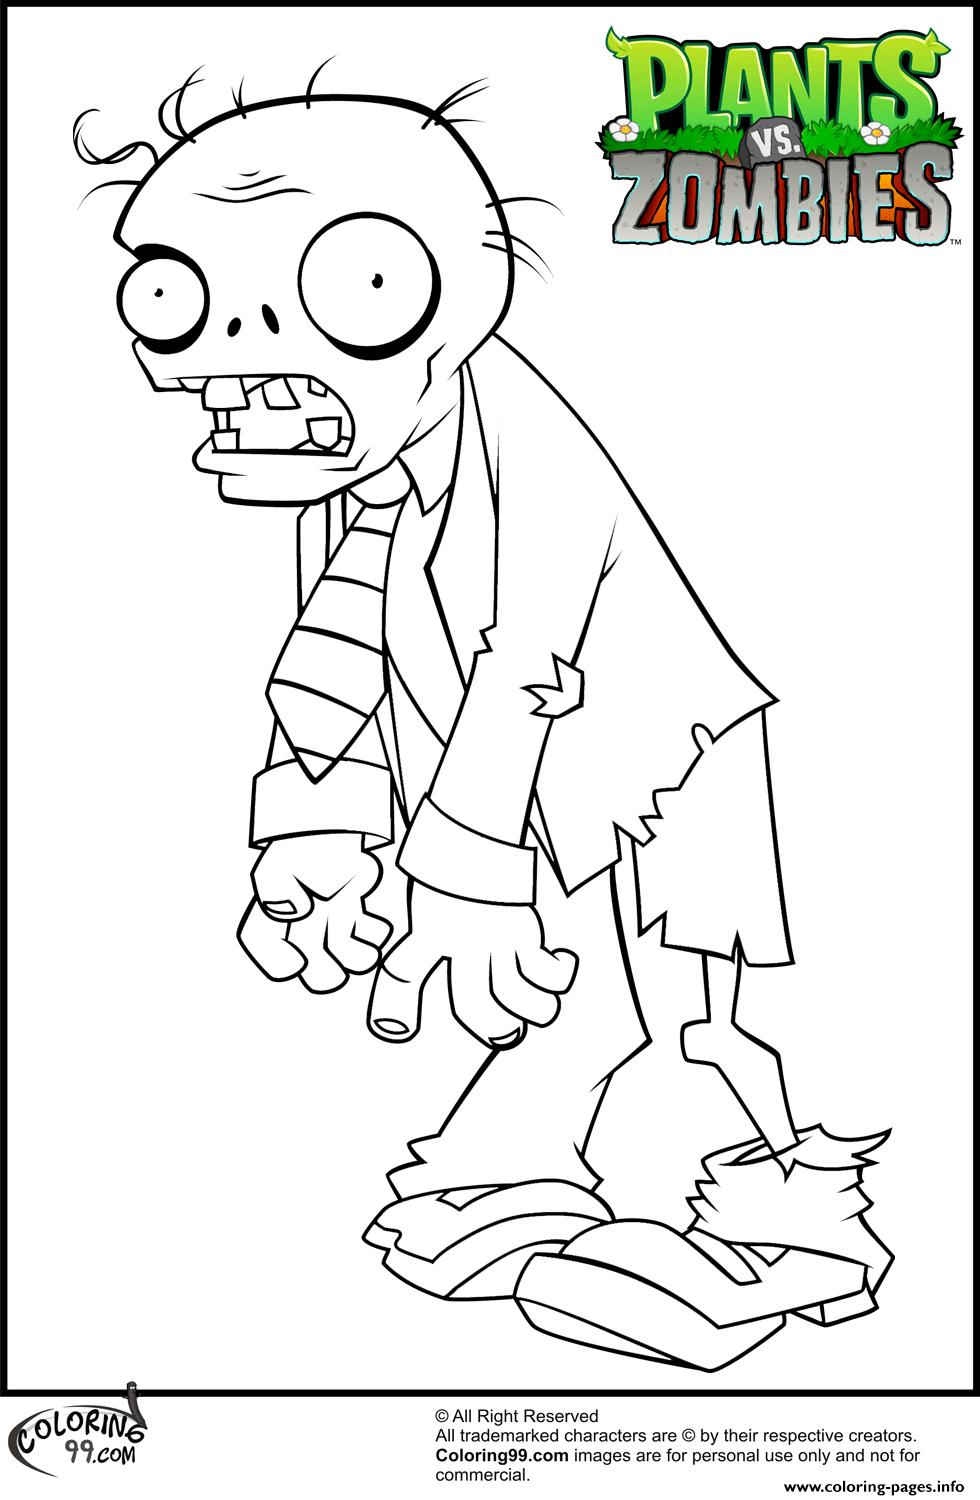 Suit Zombie Coloring Pages Plants Vs Zombies Coloring Pages Printable